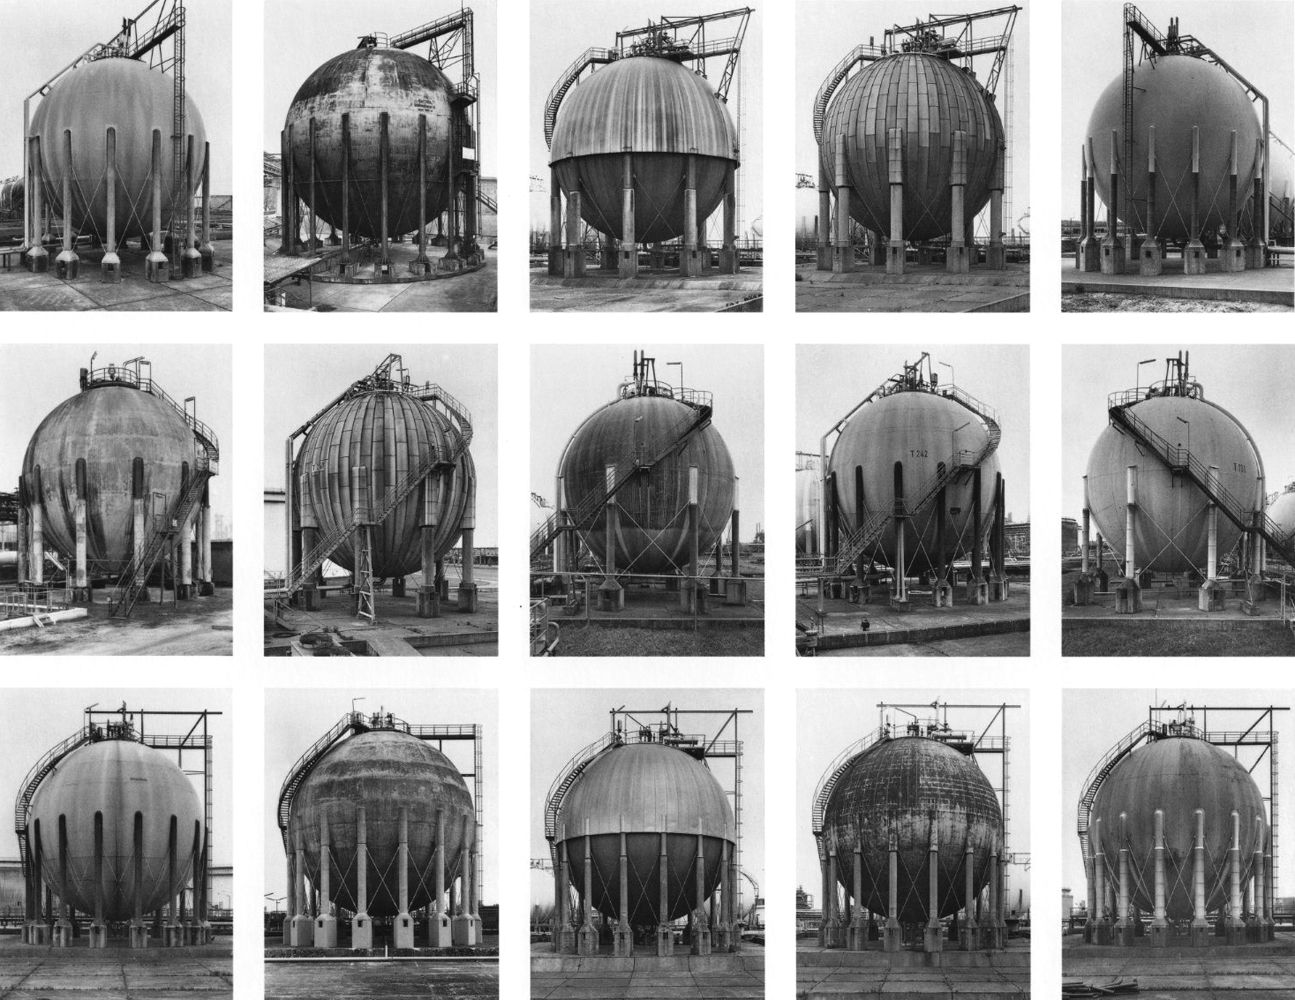 Anonyme Skulpturen: Eine Typologie technischer Bauten and Typologien, Industrieller Bau, 1963–1975 by Bernd and Hilla Becher